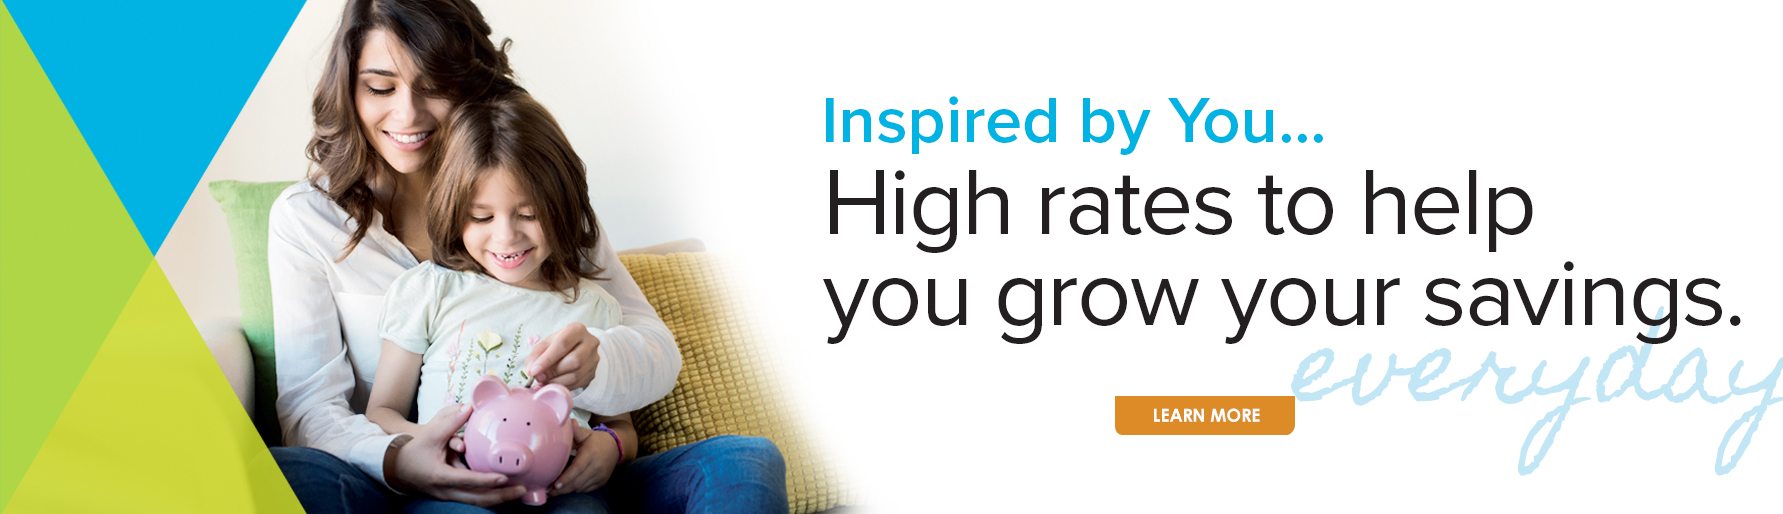 High rates to help you grow your savings